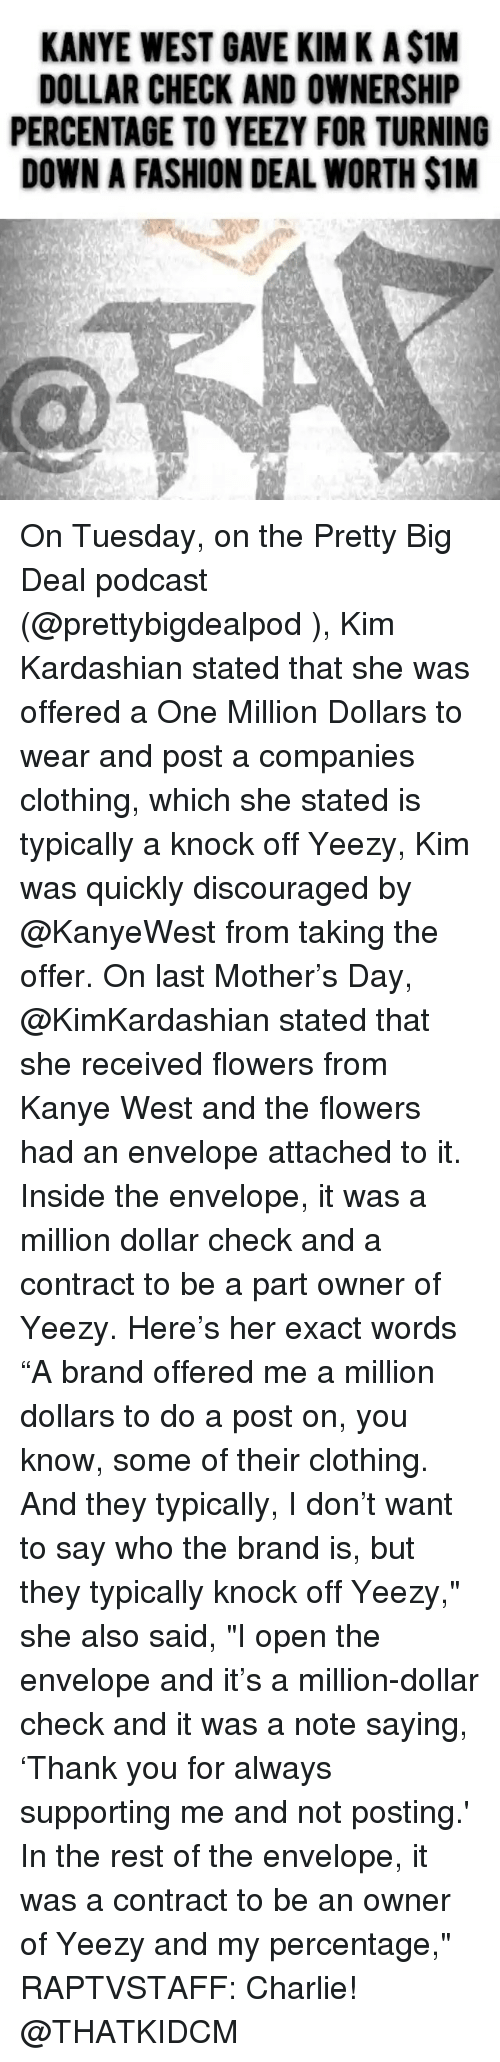 "Charlie, Fashion, and Kanye: KANYE WEST GAVE KIM K A $1M  DOLLAR CHECK AND OWNERSHIP  PERCENTAGE TO YEEZY FOR TURNING  DOWN A FASHION DEAL WORTH $1M On Tuesday, on the Pretty Big Deal podcast (@prettybigdealpod ), Kim Kardashian stated that she was offered a One Million Dollars to wear and post a companies clothing, which she stated is typically a knock off Yeezy, Kim was quickly discouraged by @KanyeWest from taking the offer. On last Mother's Day, @KimKardashian stated that she received flowers from Kanye West and the flowers had an envelope attached to it. Inside the envelope, it was a million dollar check and a contract to be a part owner of Yeezy. Here's her exact words ""A brand offered me a million dollars to do a post on, you know, some of their clothing. And they typically, I don't want to say who the brand is, but they typically knock off Yeezy,"" she also said, ""I open the envelope and it's a million-dollar check and it was a note saying, 'Thank you for always supporting me and not posting.' In the rest of the envelope, it was a contract to be an owner of Yeezy and my percentage,"" RAPTVSTAFF: Charlie! @THATKIDCM"